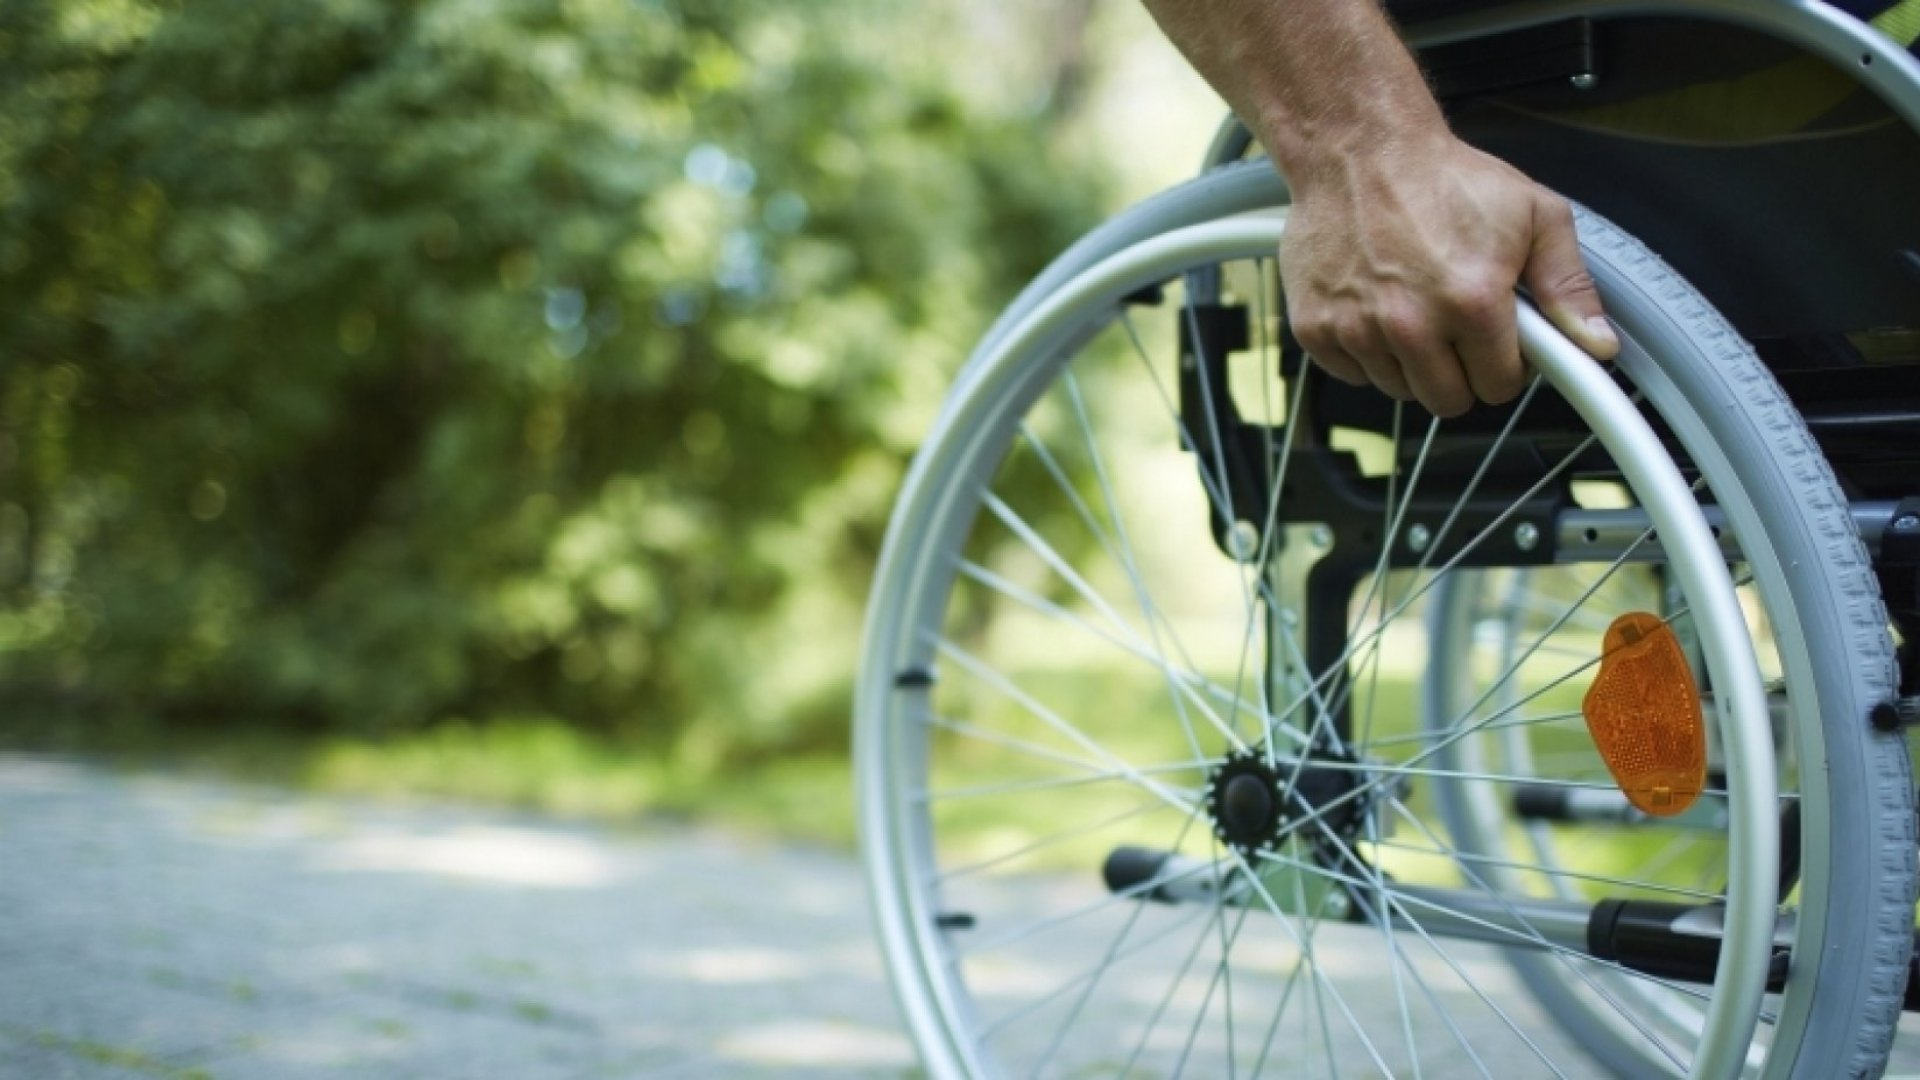 Meet an Inspirational Entrepreneur Who's Aiming to Cure Paralysis Within a Decade